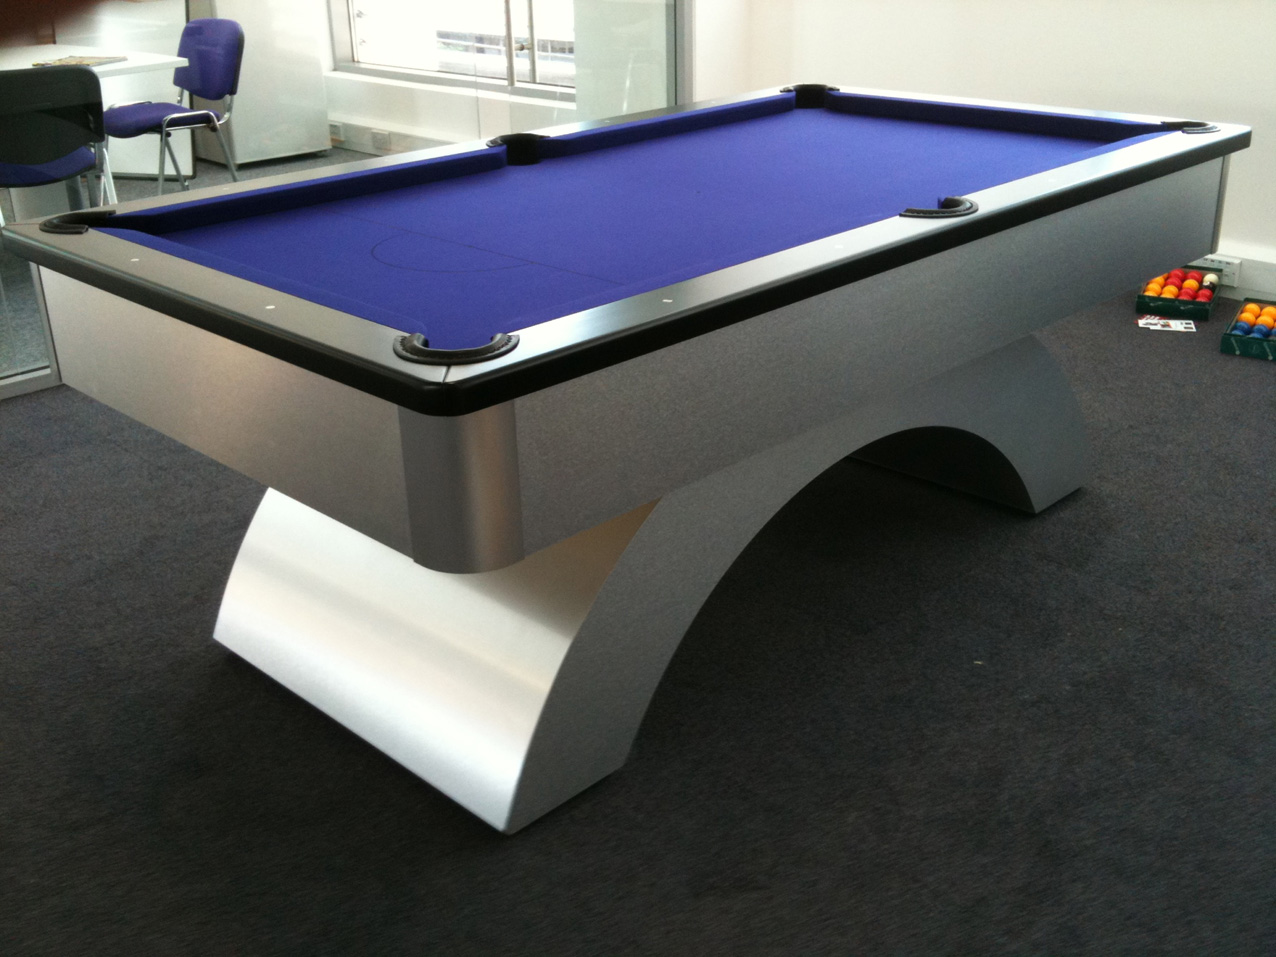 Black Cushion Rail with Blue Cloth Arched UK Pool Table : 241 from www.snookerandpooltablecompany.com size 1276 x 957 jpeg 330kB